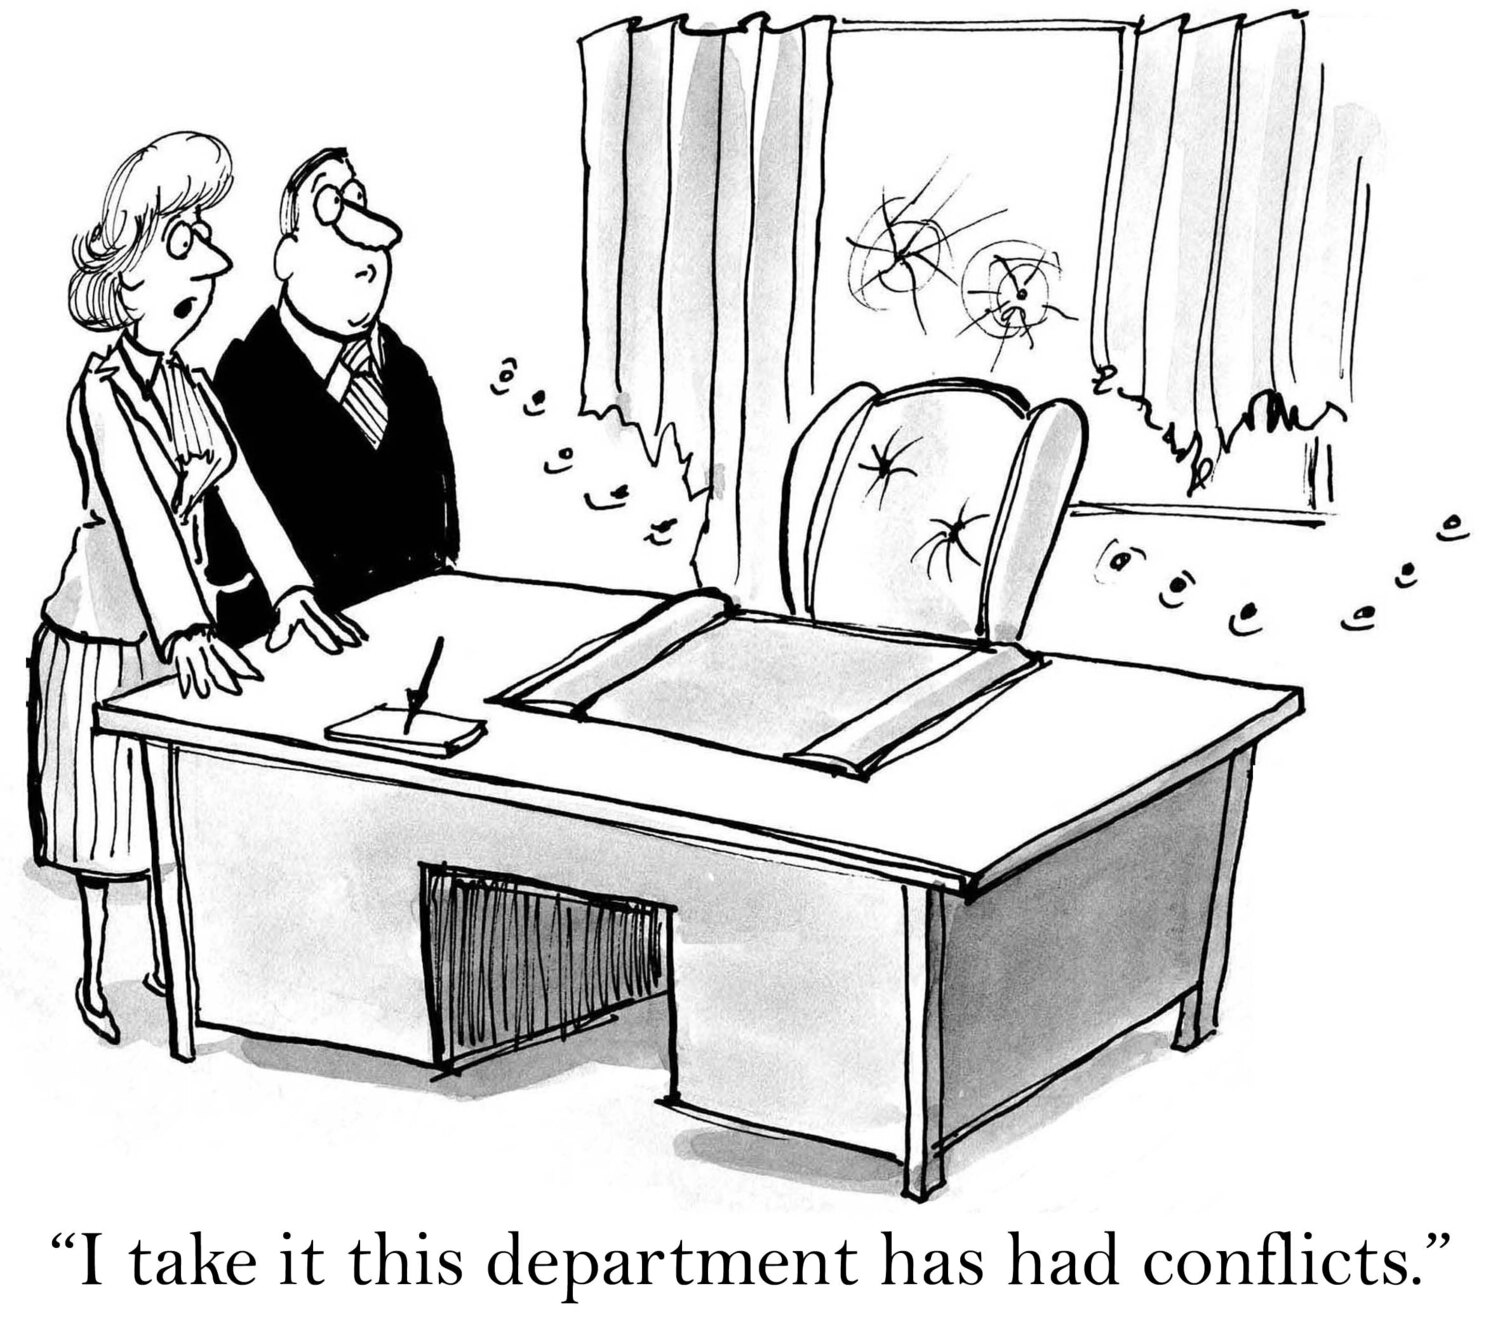 Conflict Management Cartoon